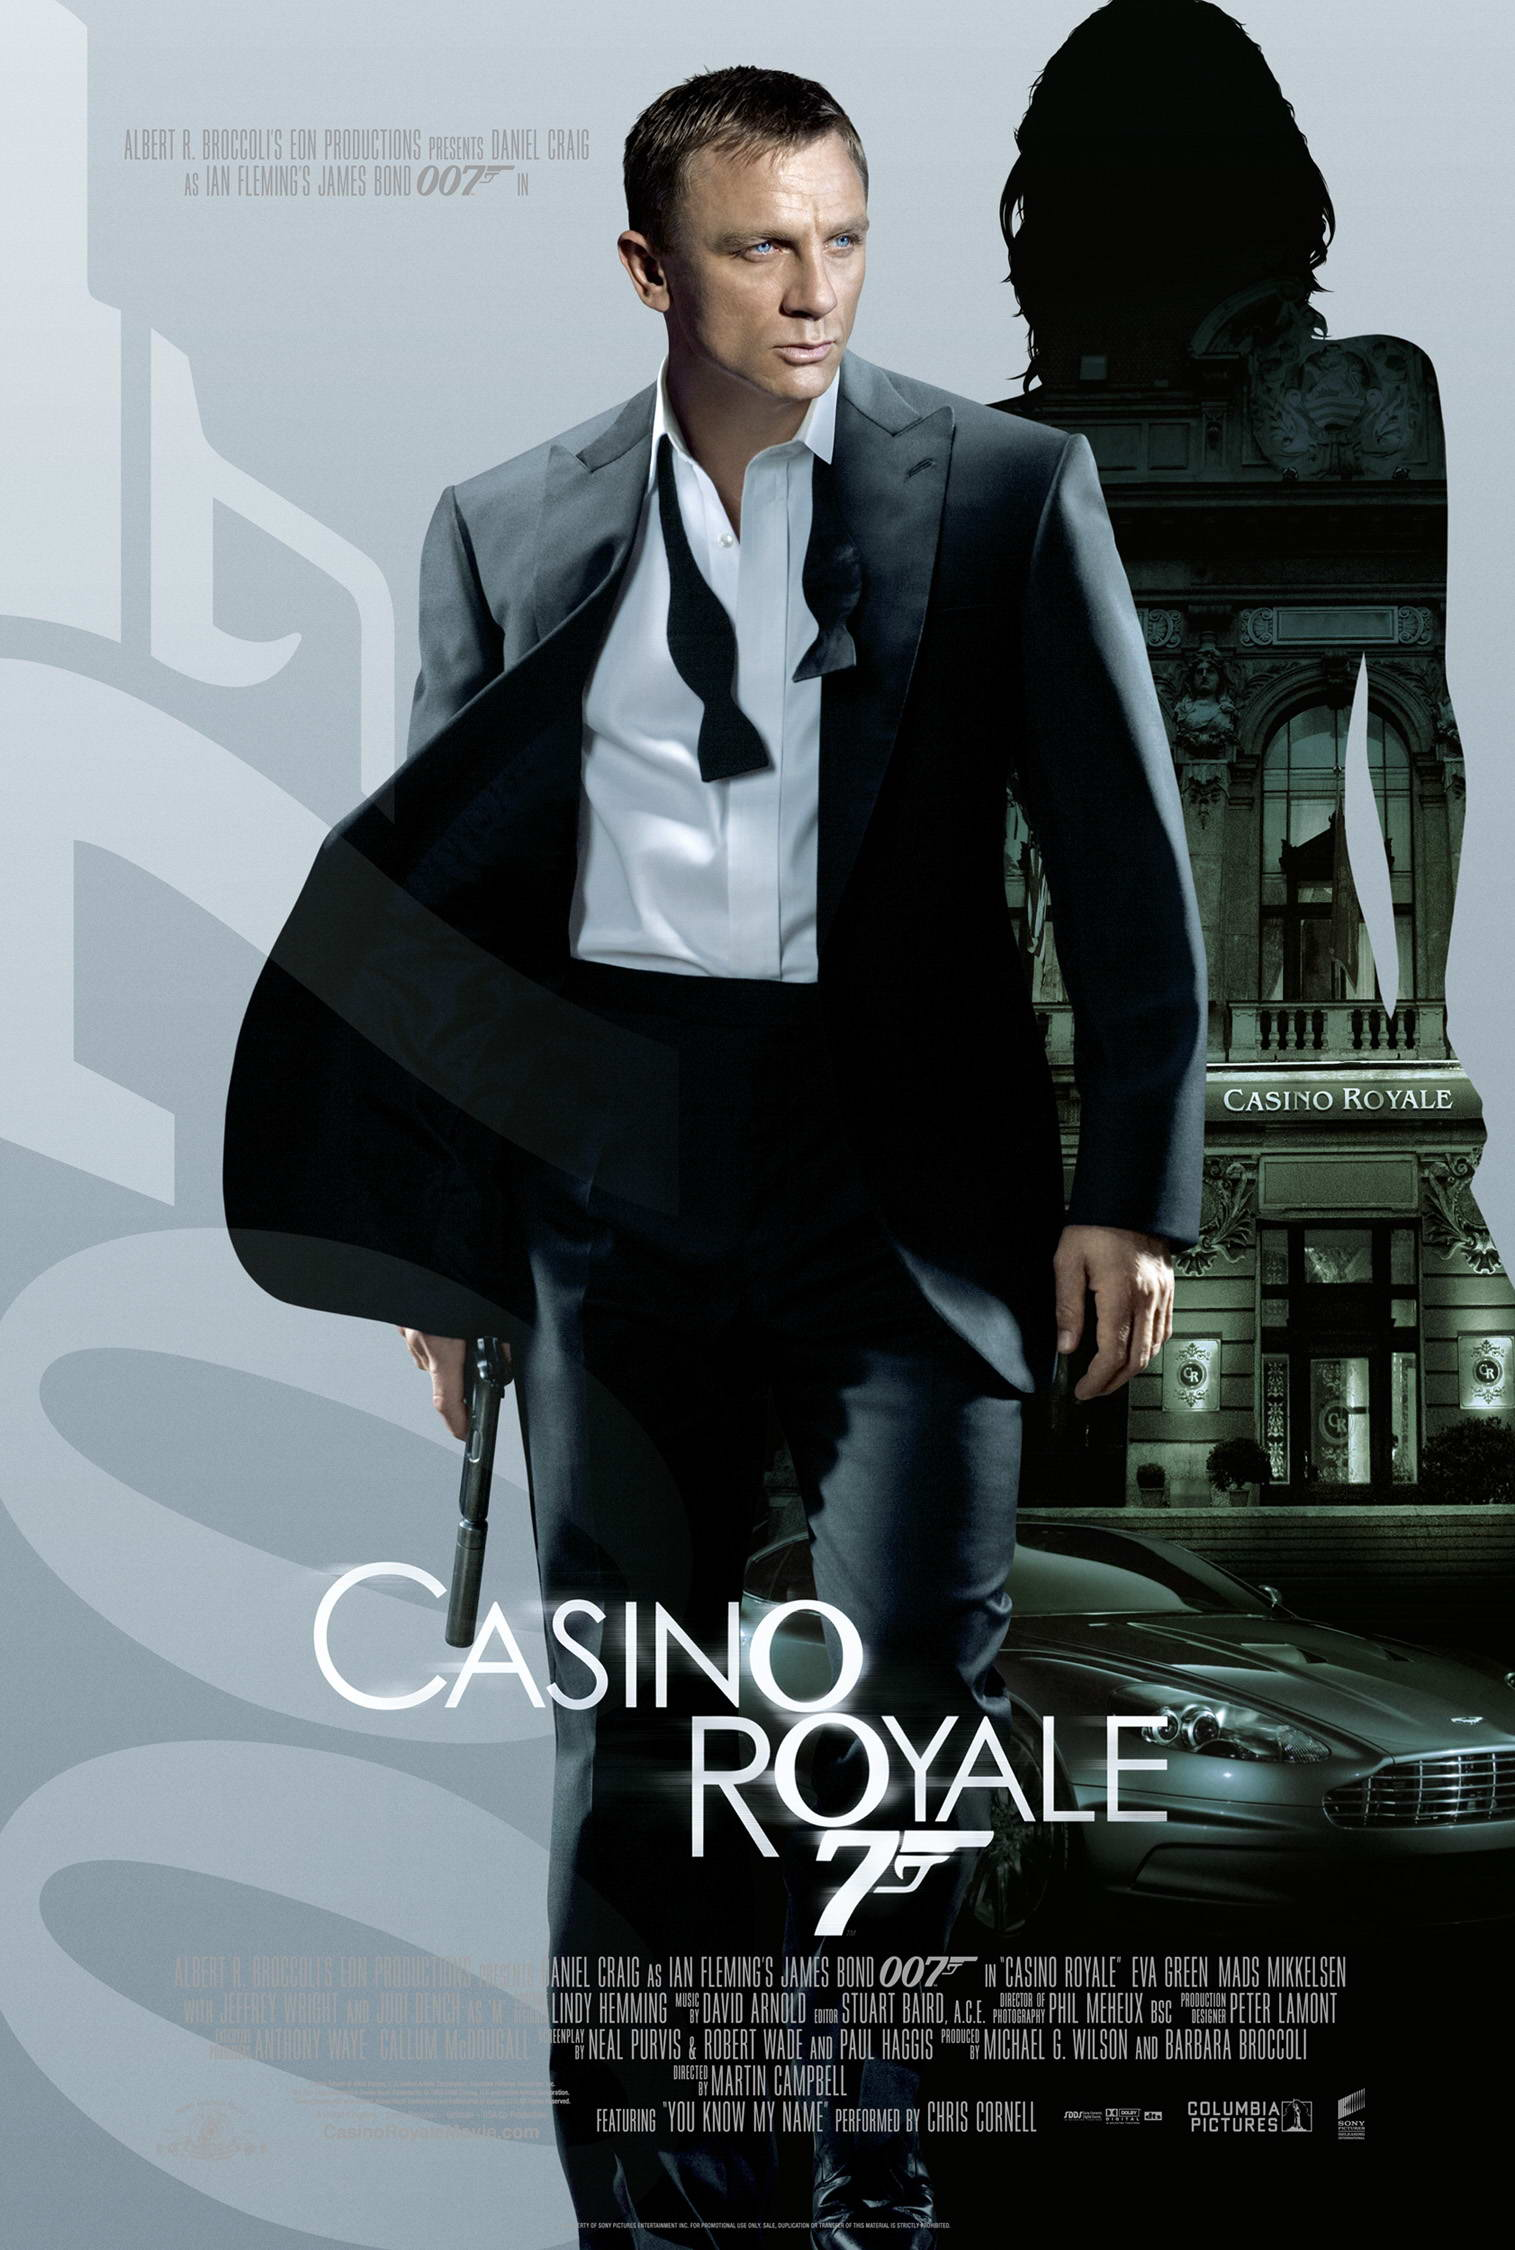 007 casino royale reviews mcys gambling safeguards